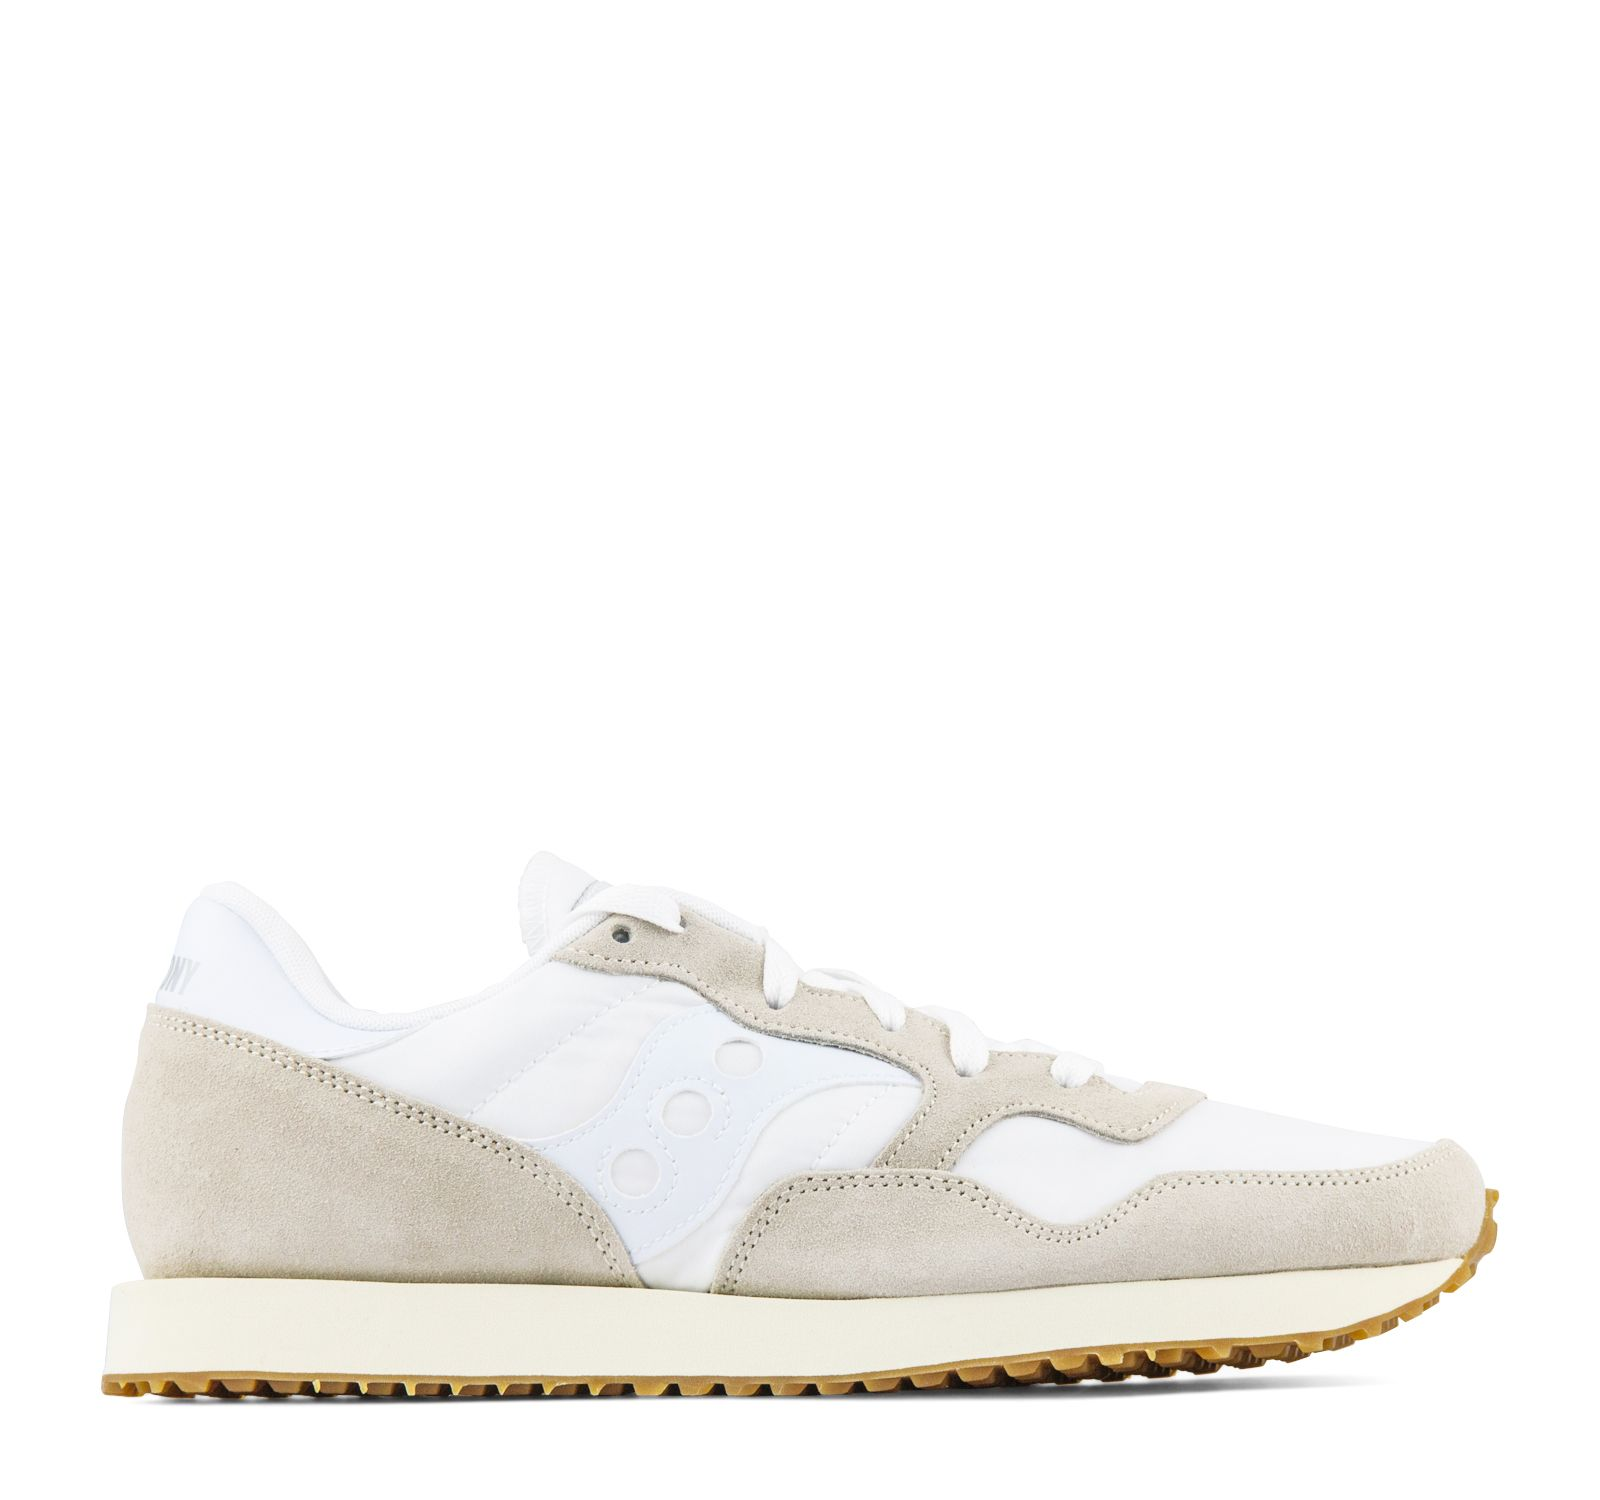 179feaadbaef Saucony DXN Trainer Vintage Men s Sneaker in White